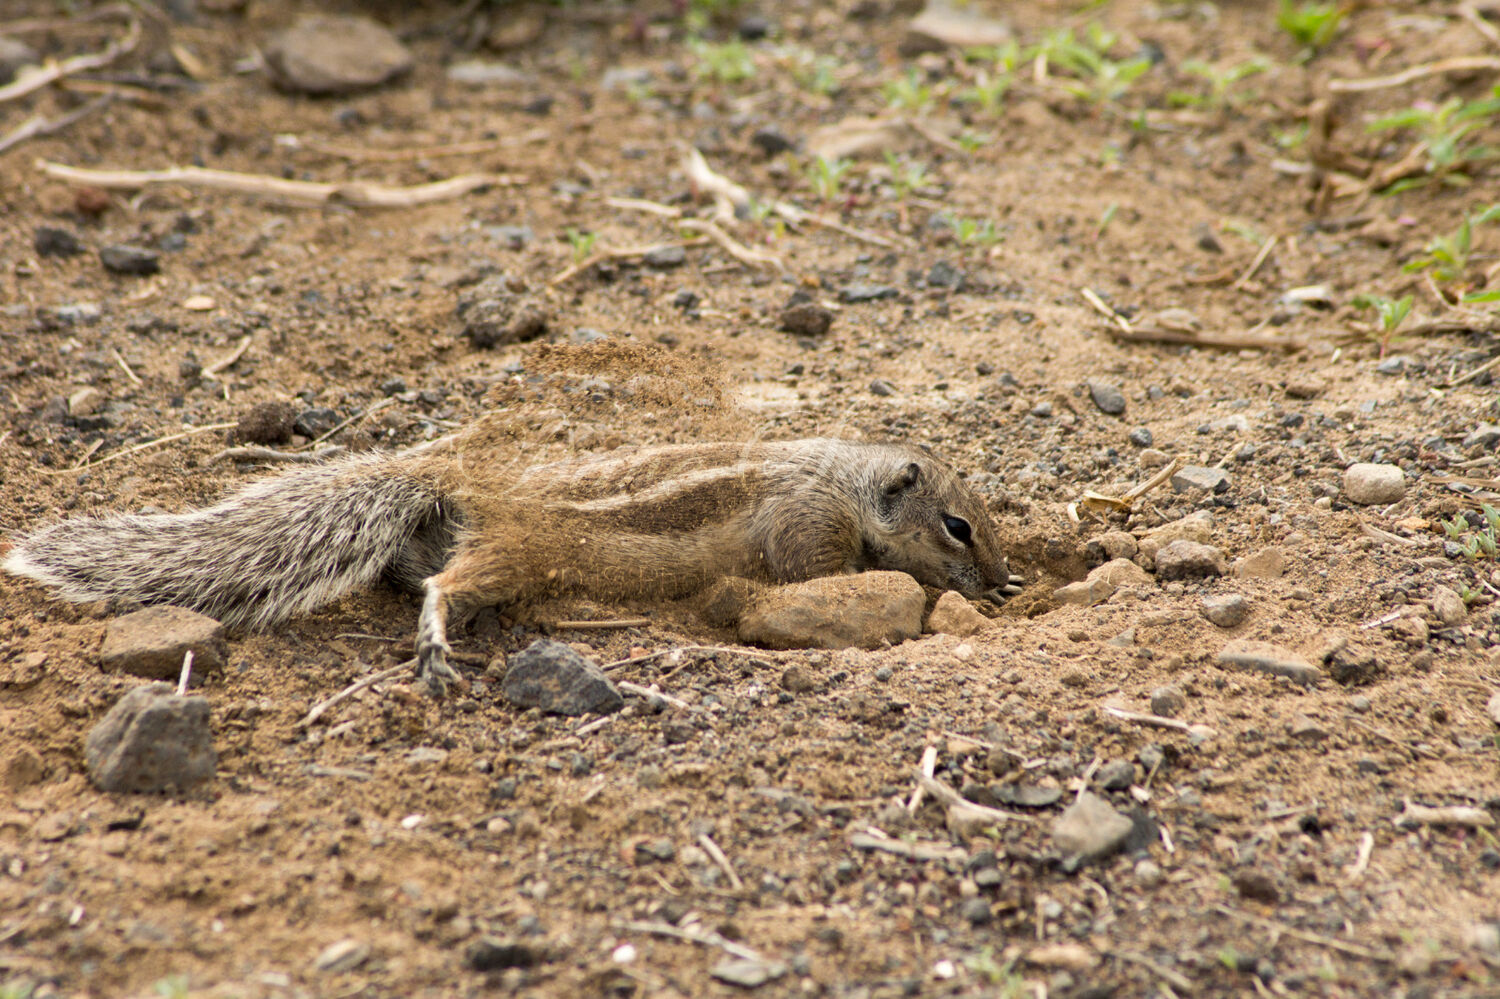 Barbary Ground Squirrel digging